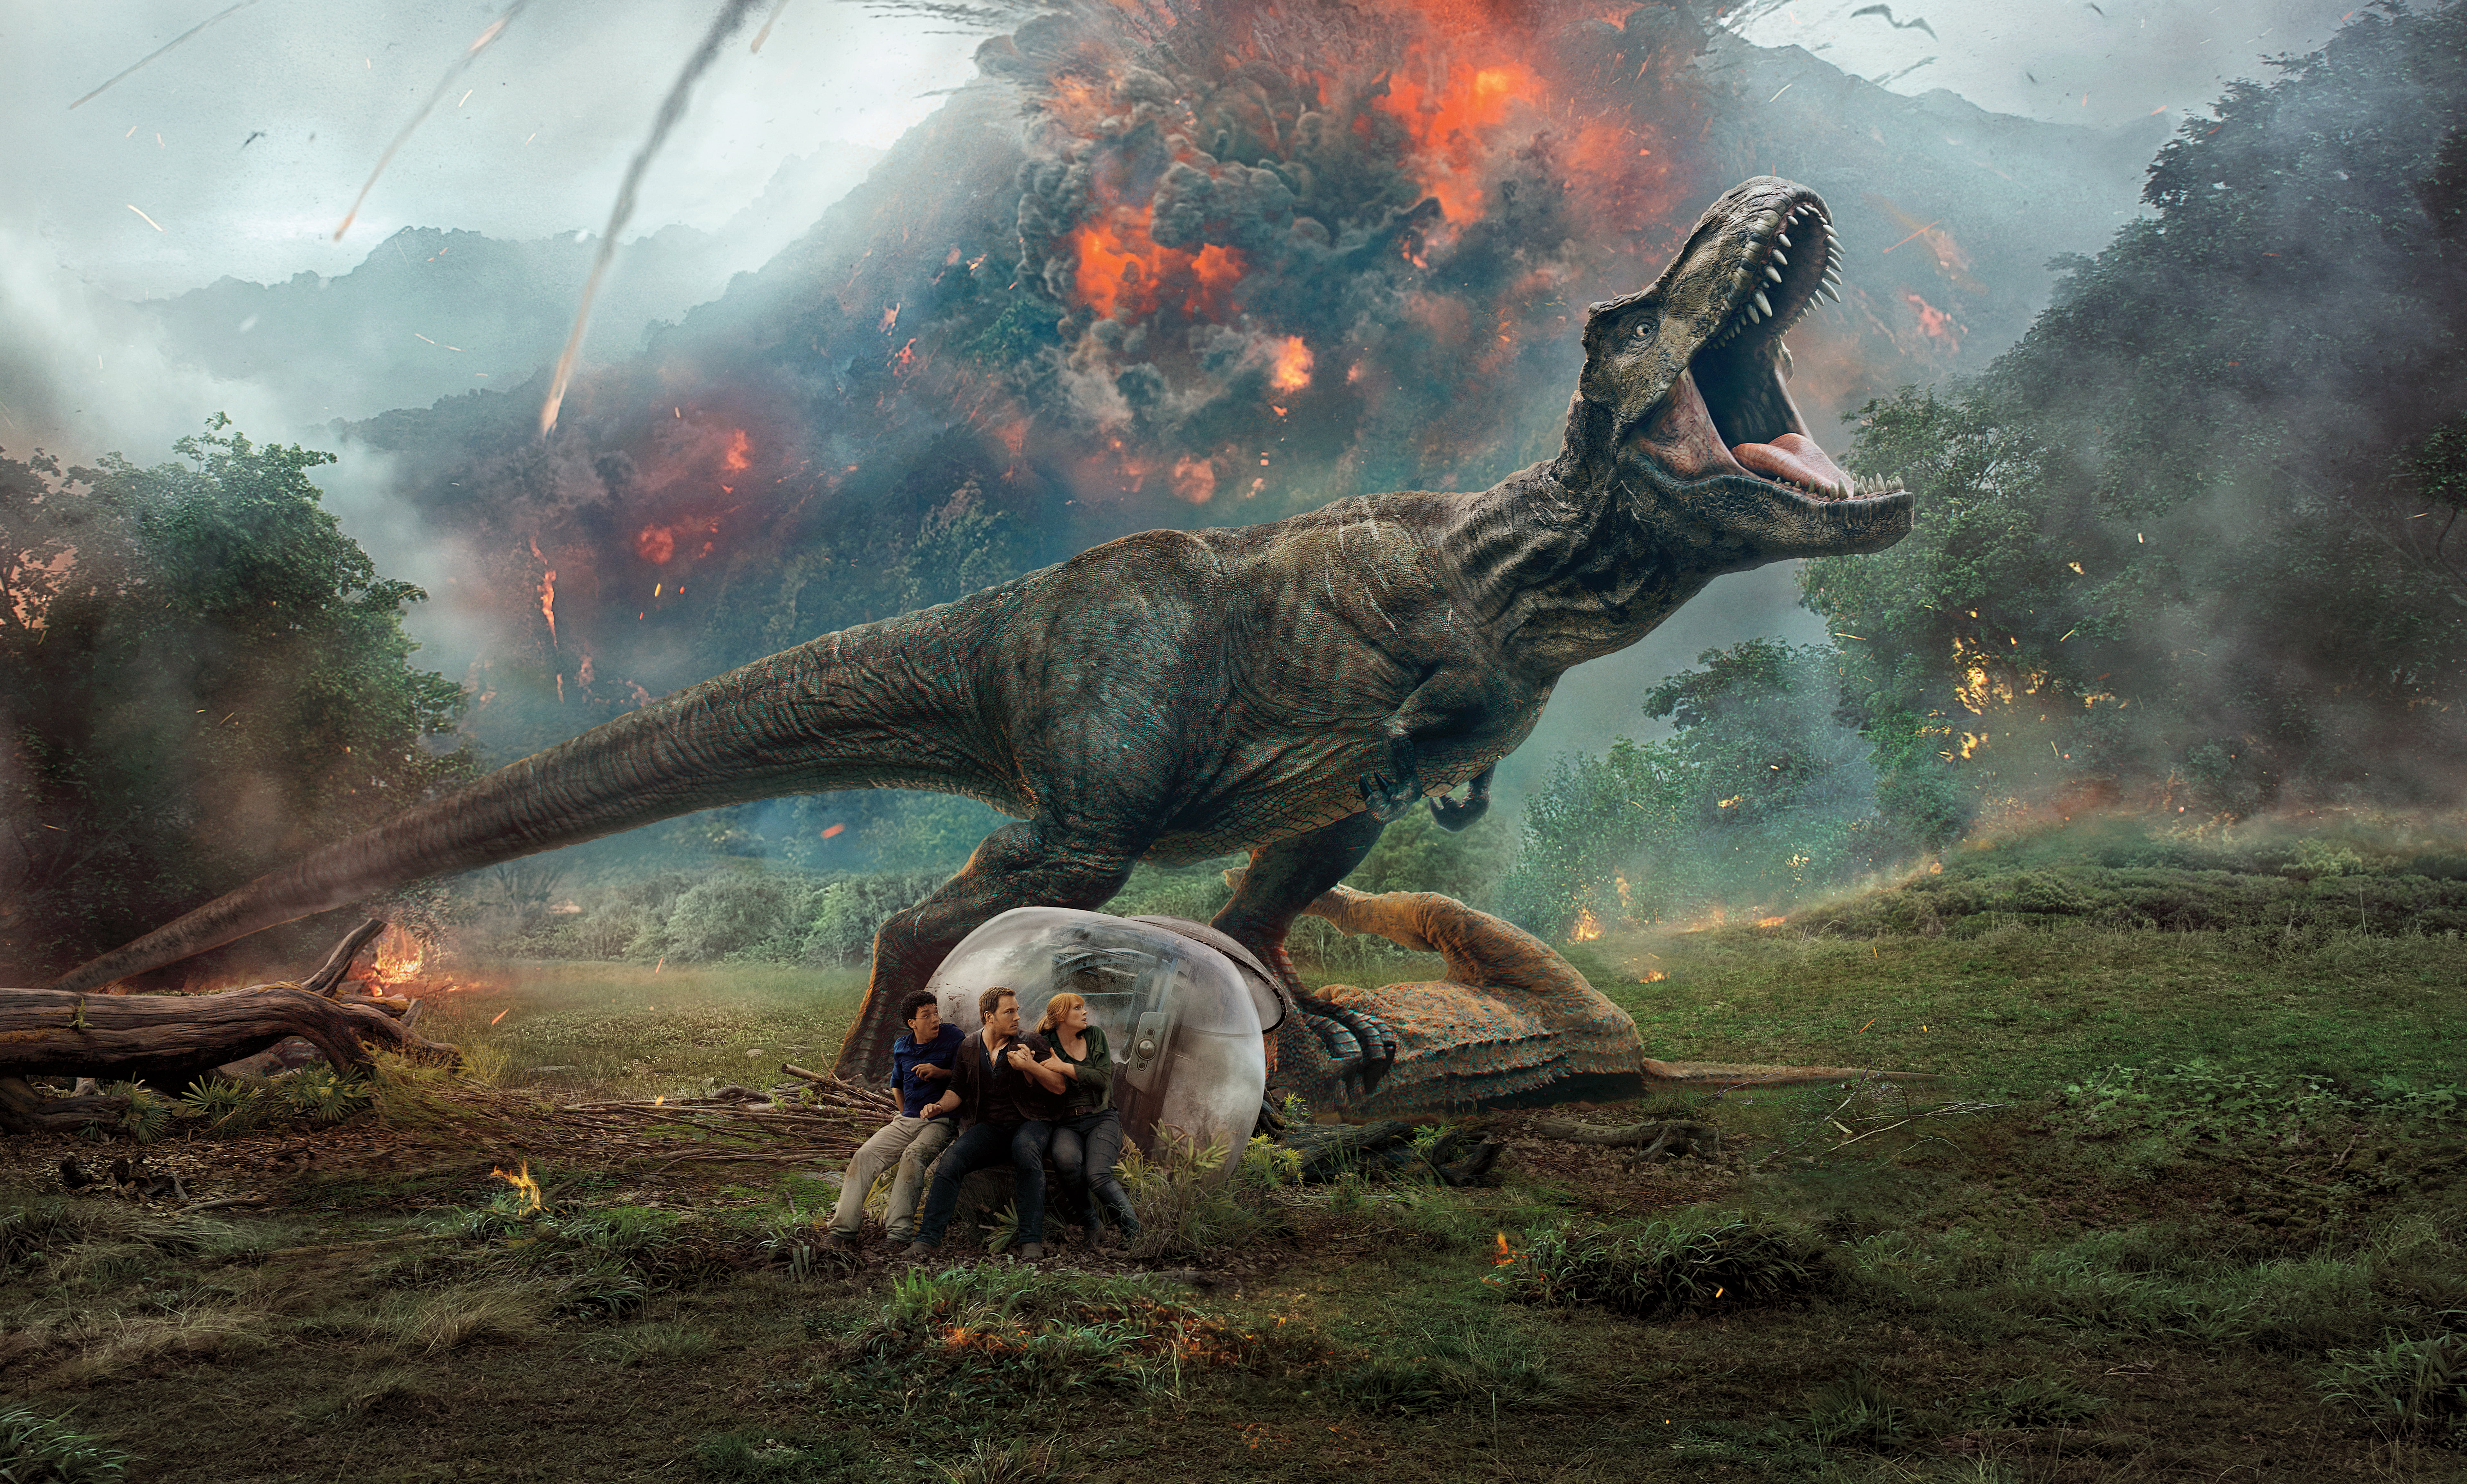 Iphone 2g Wallpaper For Iphone X The Jurassic Park Illustration Hd Wallpaper Wallpaper Flare